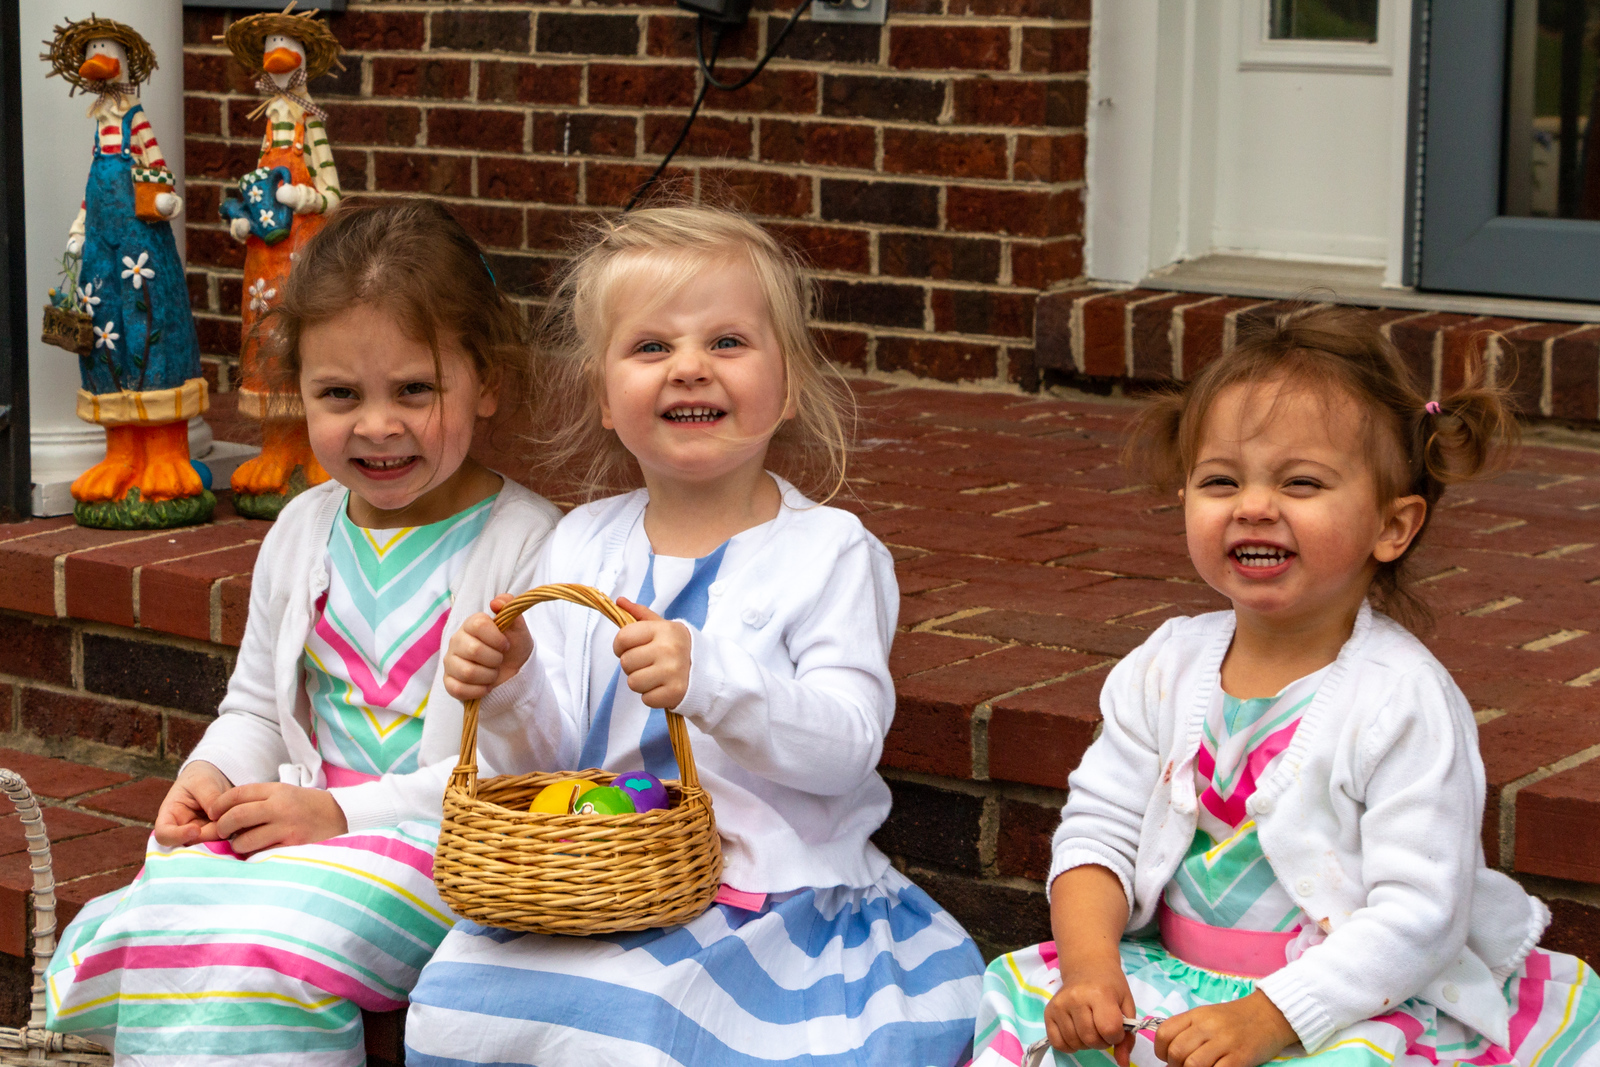 180401_046_Easter_6321-1